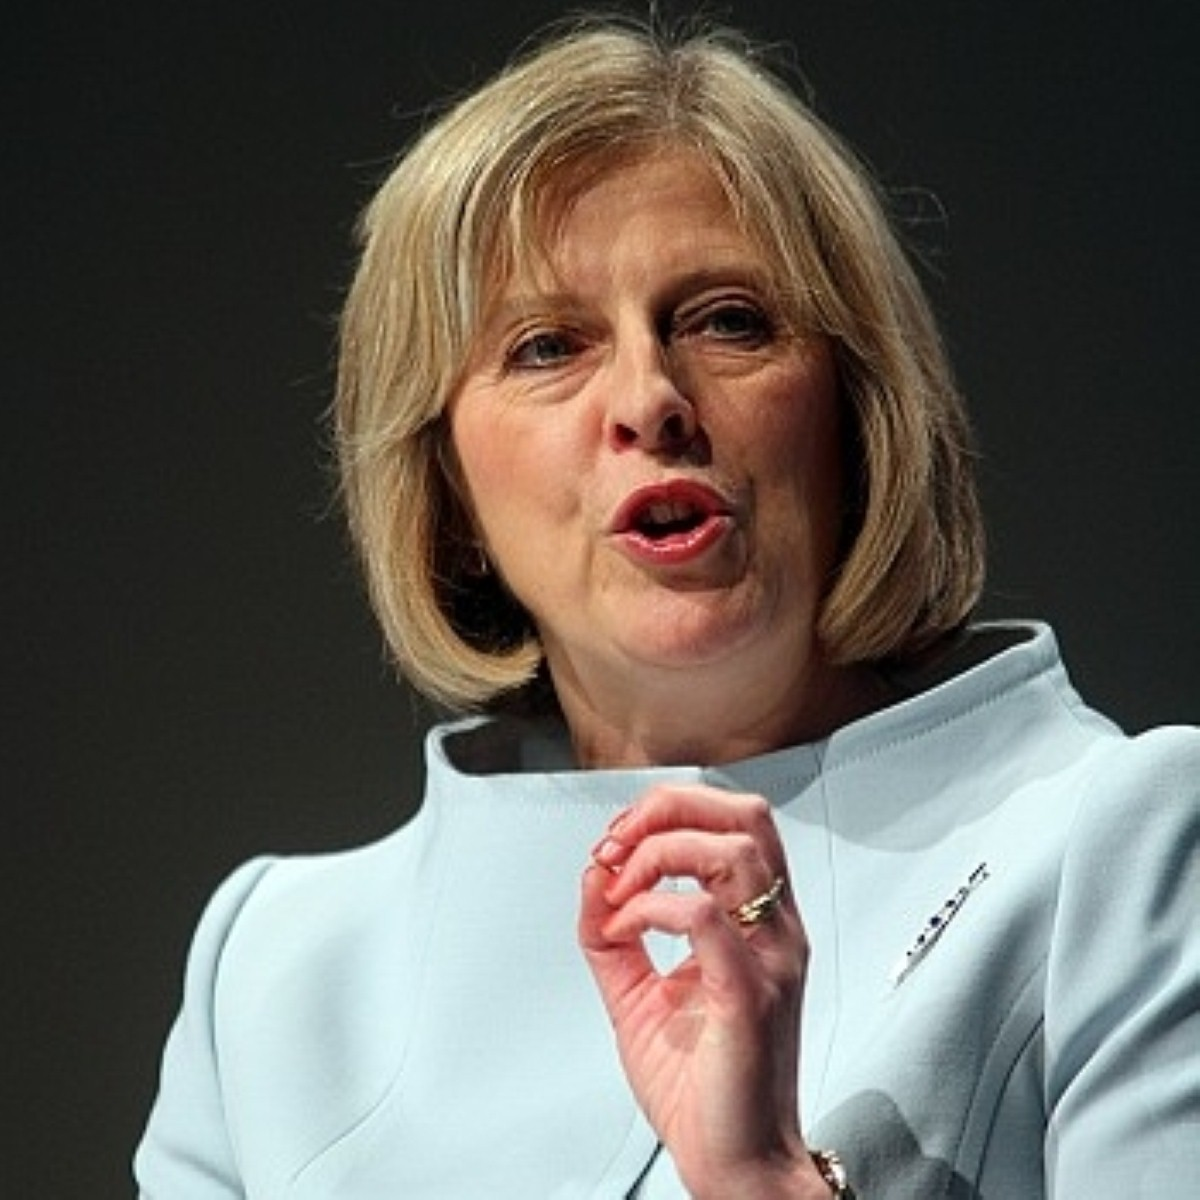 May: We don't want to damage responsible drinkers